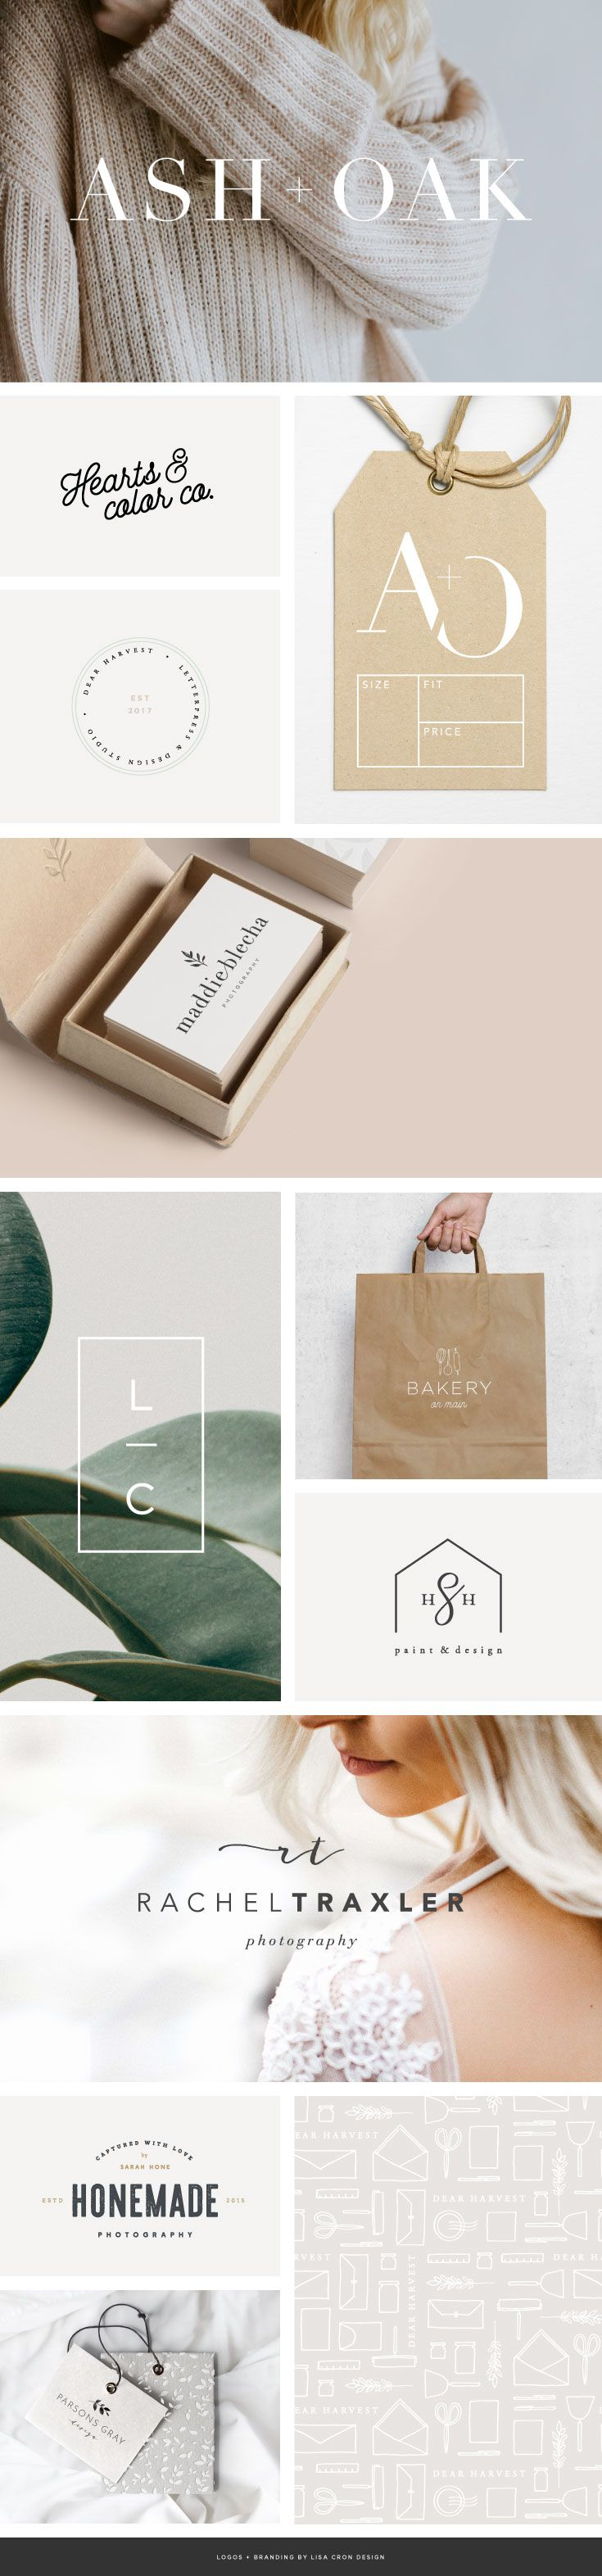 Simple and beautiful logo designs for creative businesses #smallbusinessbranding #brandstylist